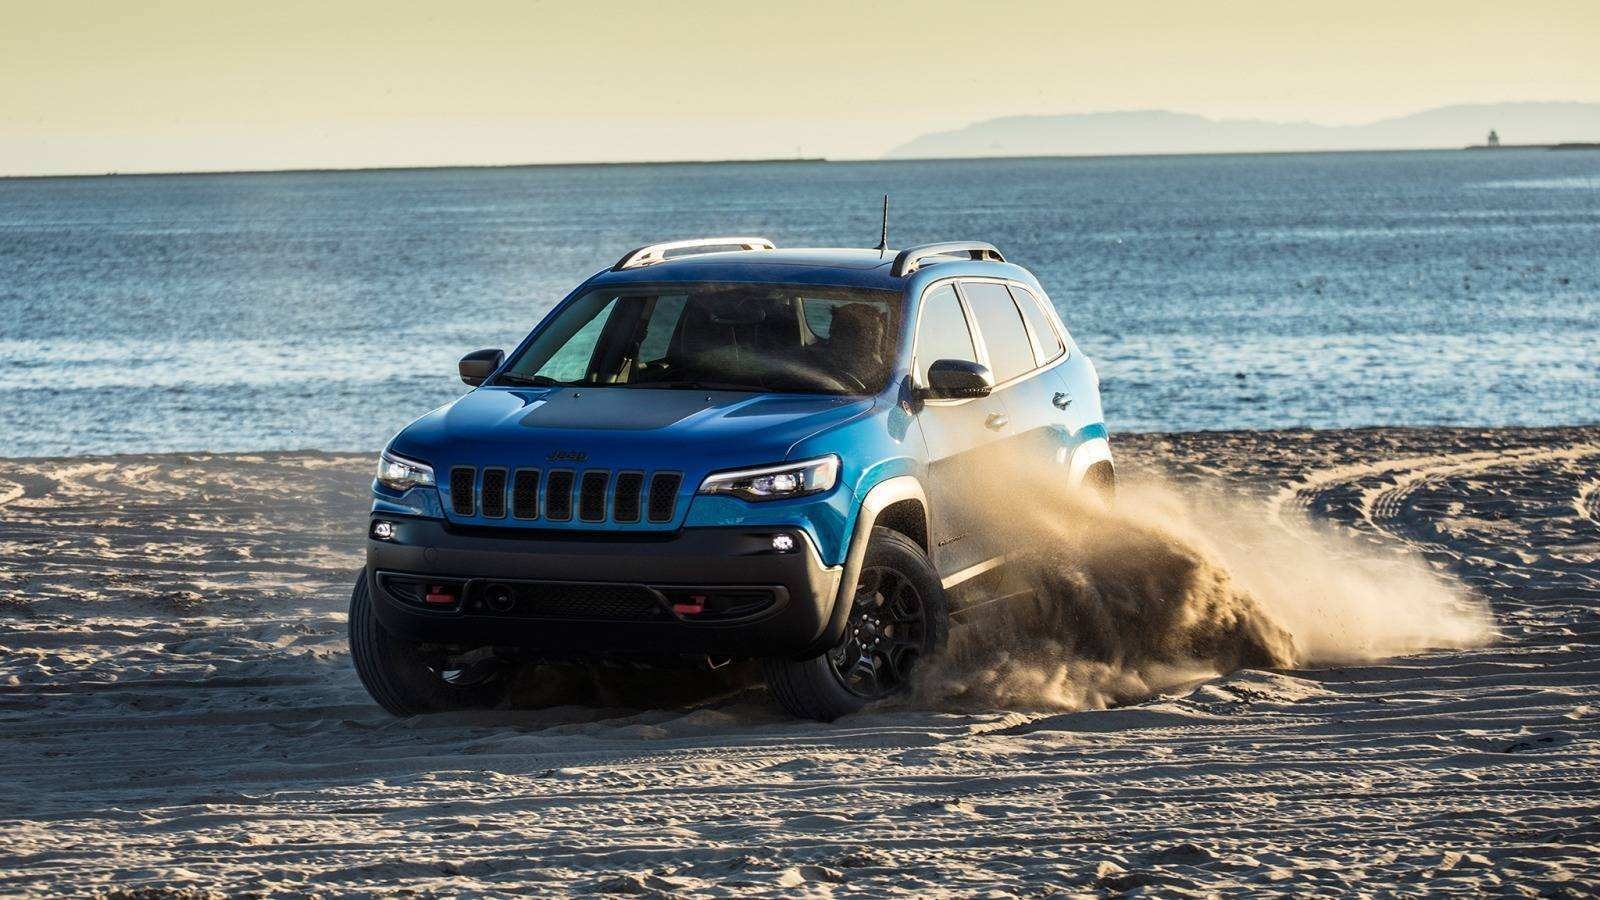 88 Gallery of 2019 Jeep 2 0 Turbo Mpg Exterior and Interior for 2019 Jeep 2 0 Turbo Mpg